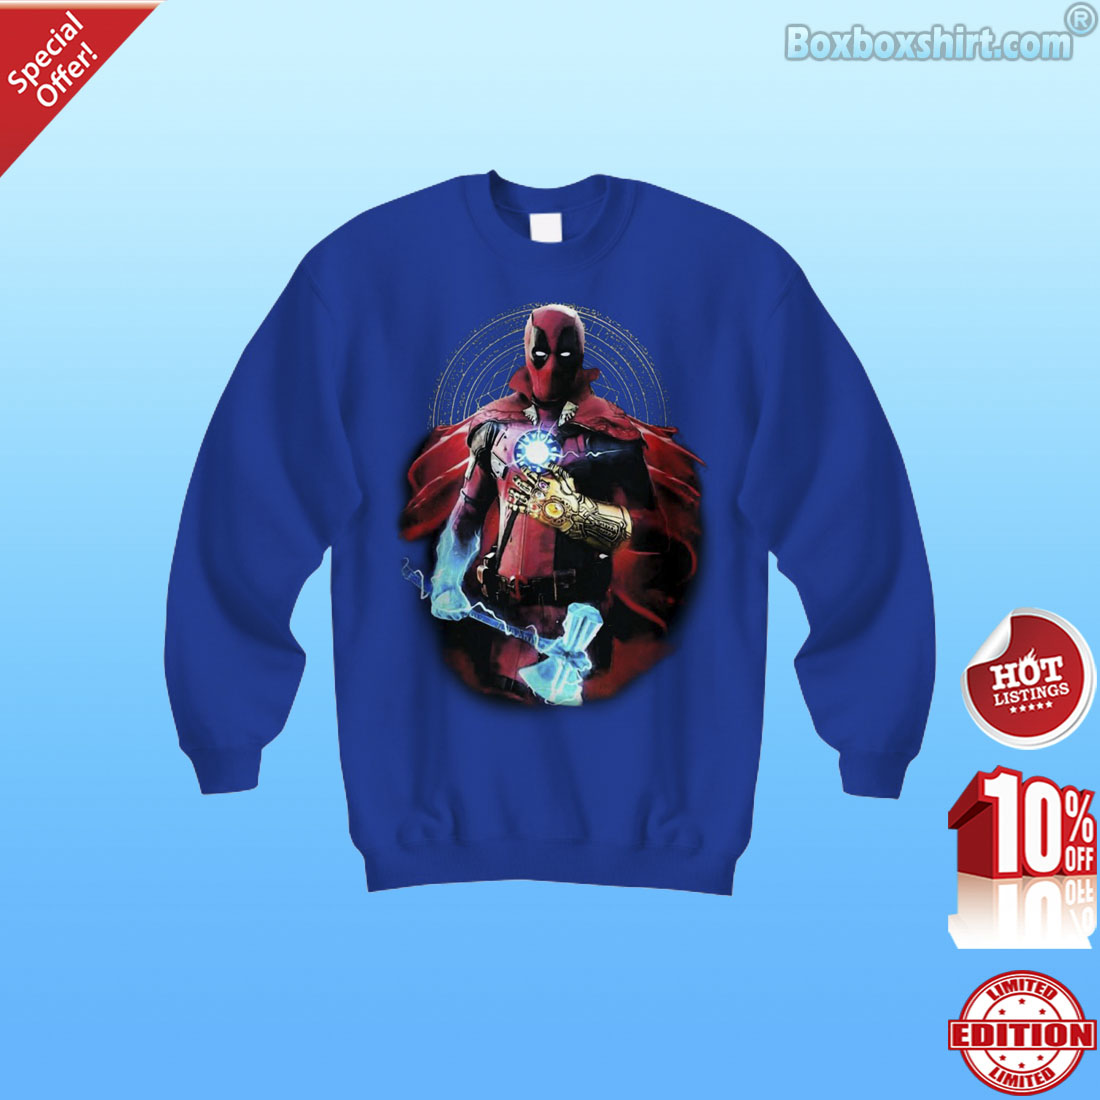 Marvel super heroes fusion shirt